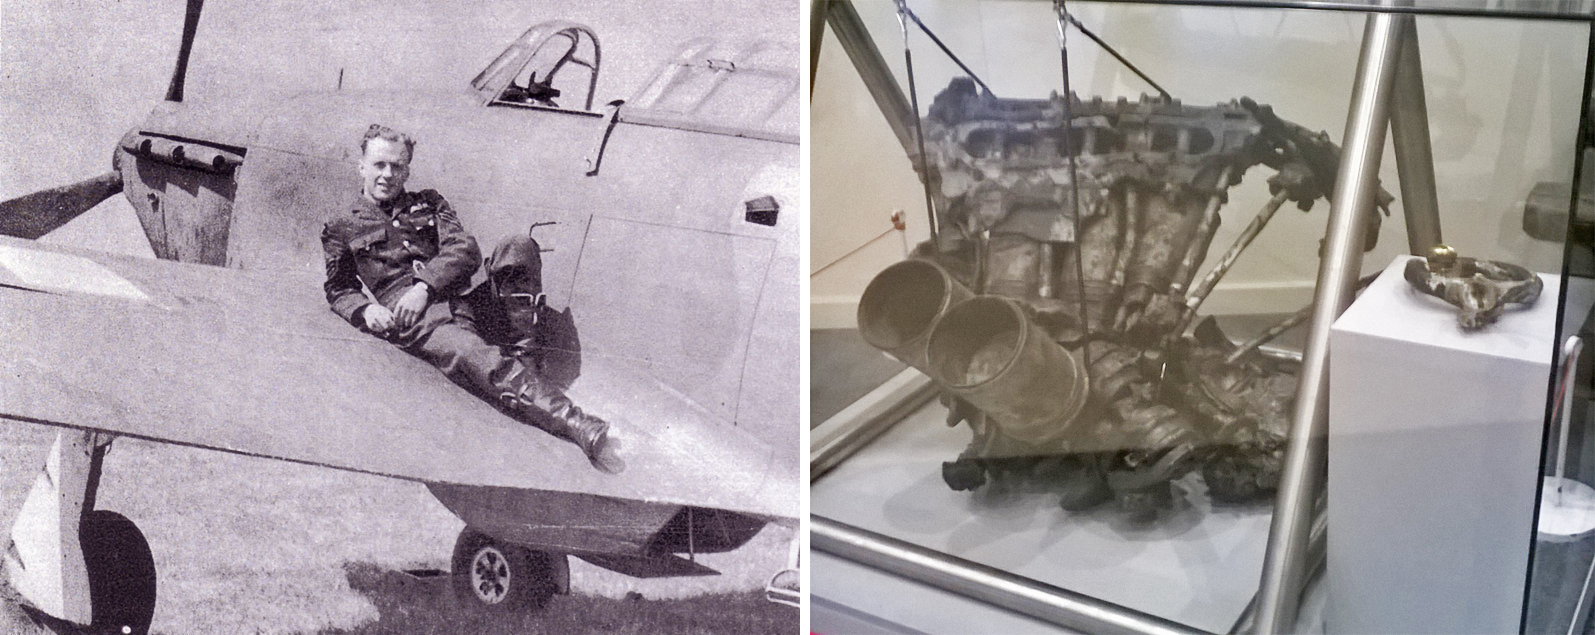 Ray Holmes with an aircraft and the burned Merlin engine and a control panel of Holmes' Hurricane at the RAF Museum London